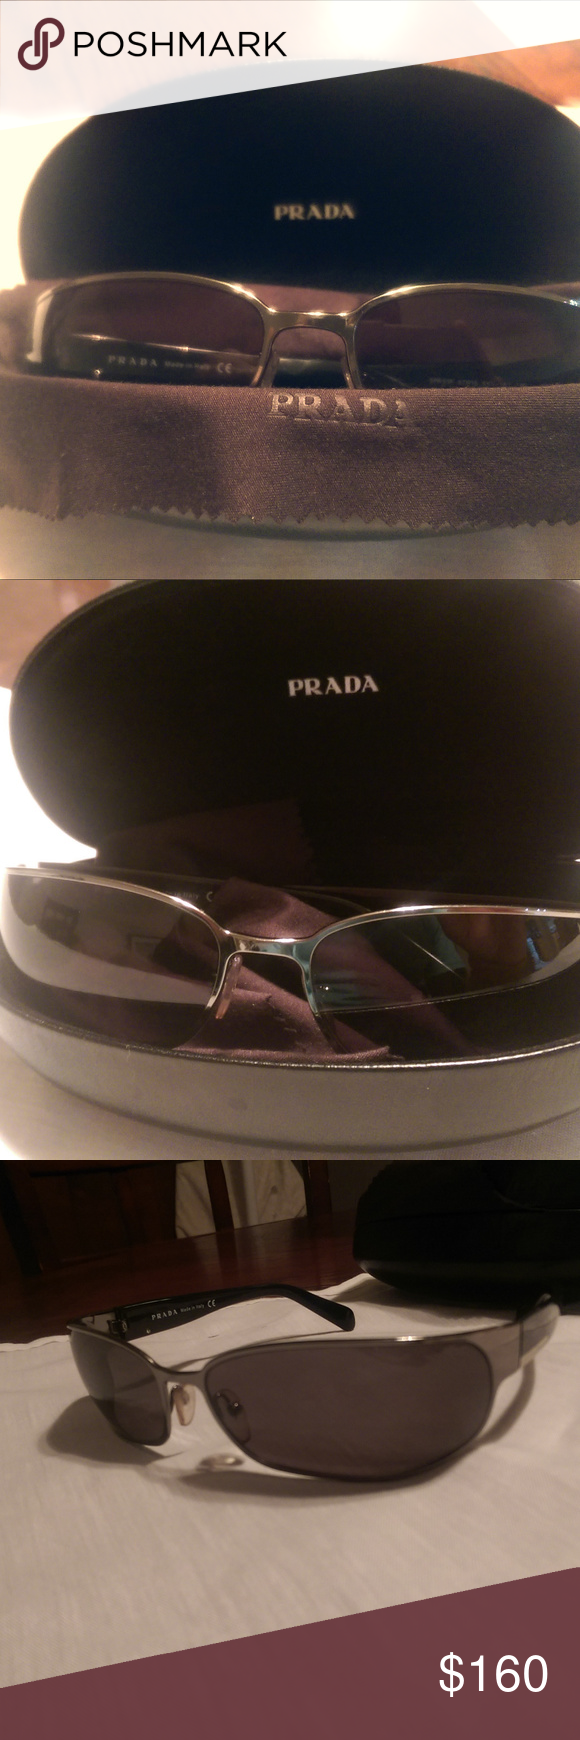 834923aad596f Prada Men s Sunglasses Model SPR53F Black Silver Like new Prada sunglasses  everything included in pictures with original container and cloth.